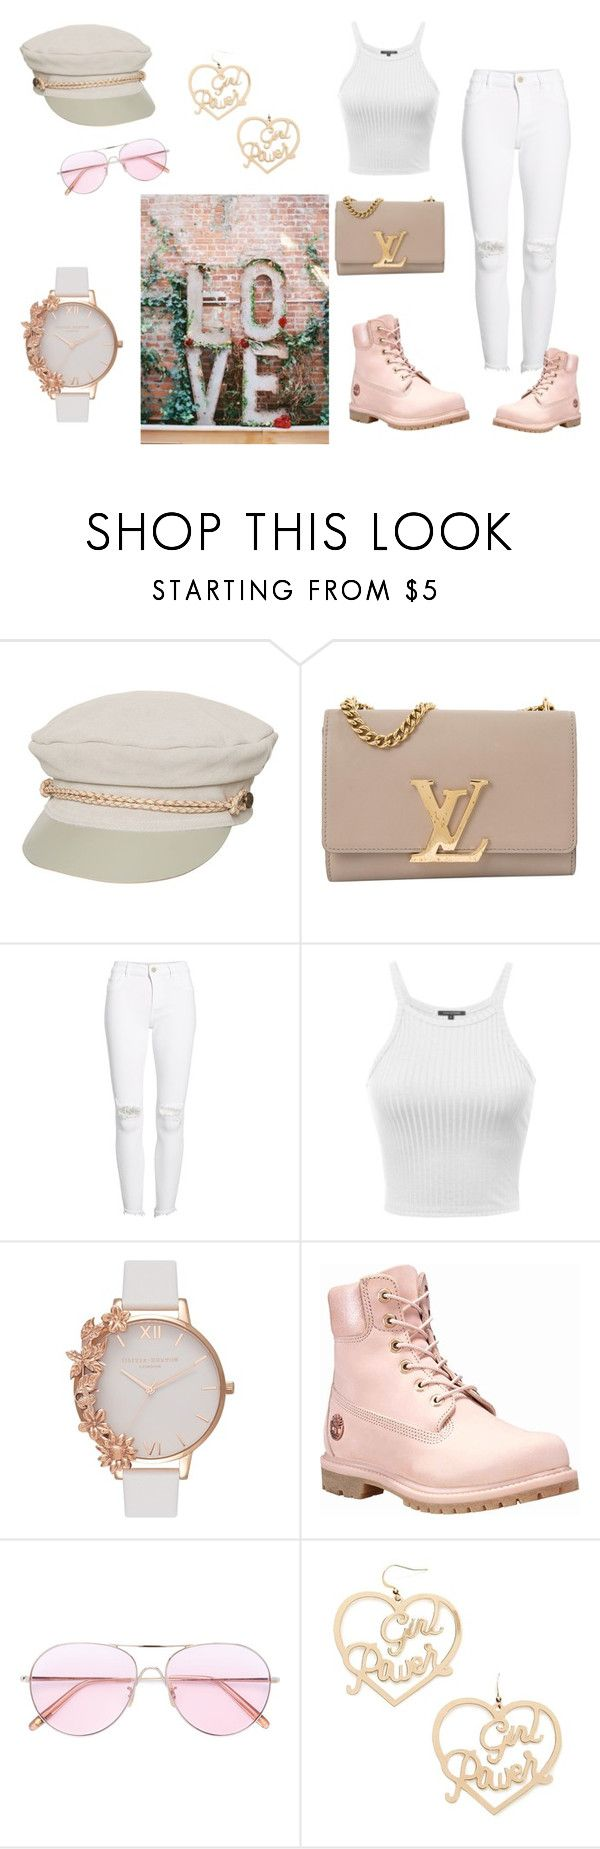 """""""Girl Power"""" by sheelaht ❤ liked on Polyvore featuring Brixton, Louis Vuitton, DL1961 Premium Denim, Olivia Burton, Timberland, Oliver Peoples, Forever 21, womensHistoryMonth, pressforprogress and GirlPride"""